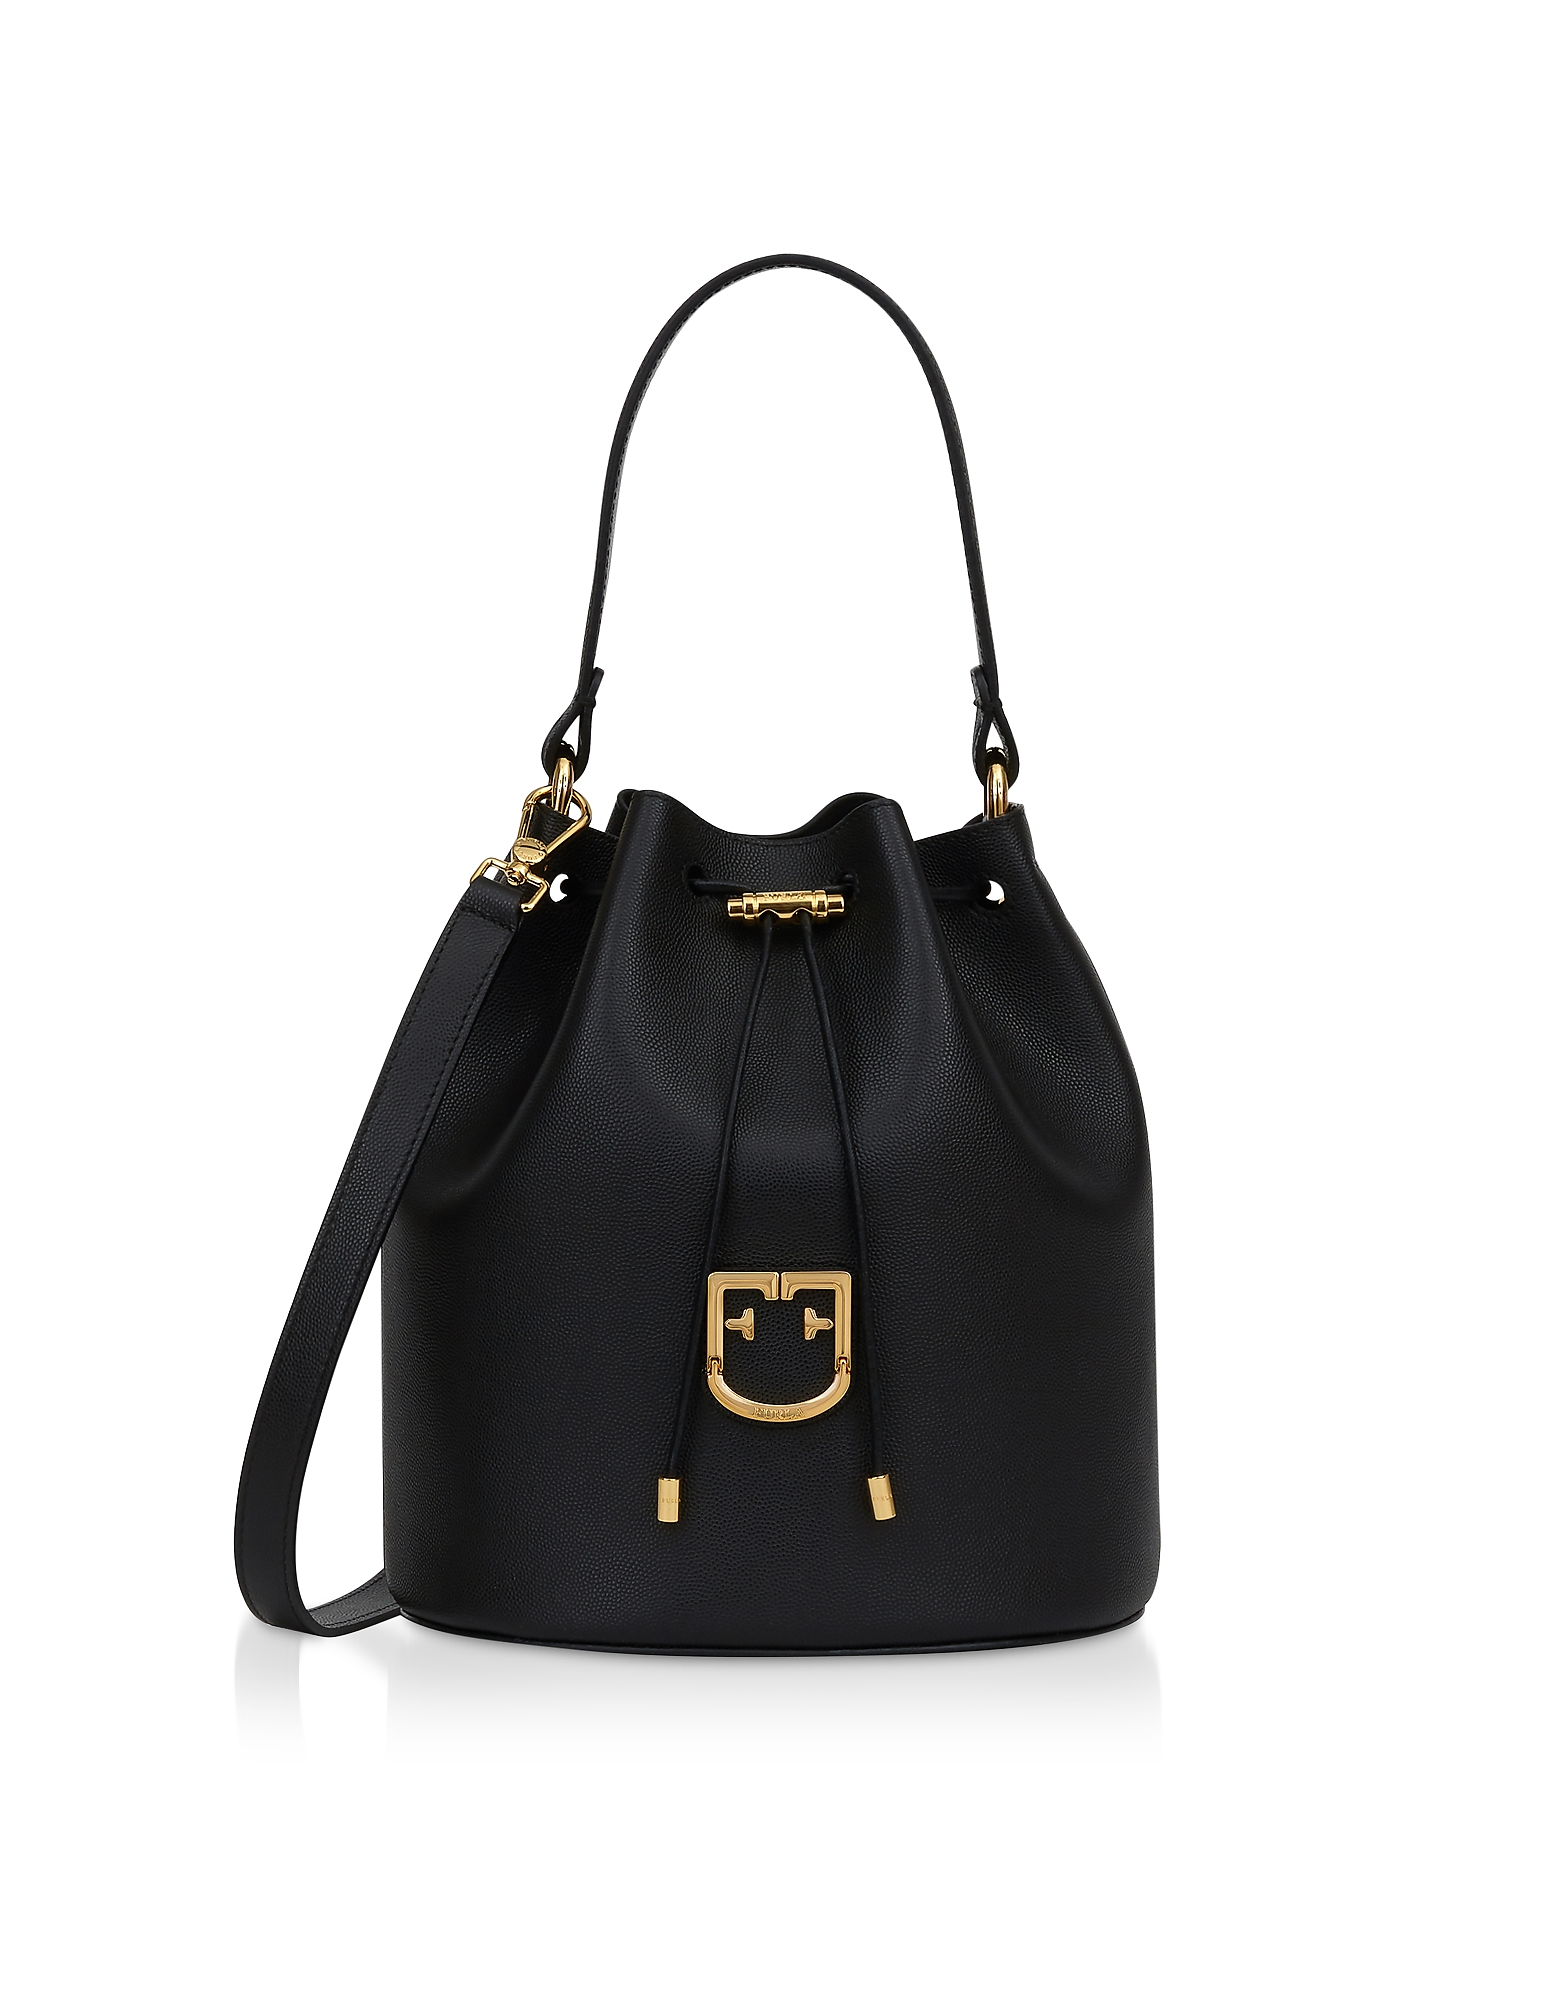 Furla Designer Handbags, Corona S Drawstring Leather Bucket Bag